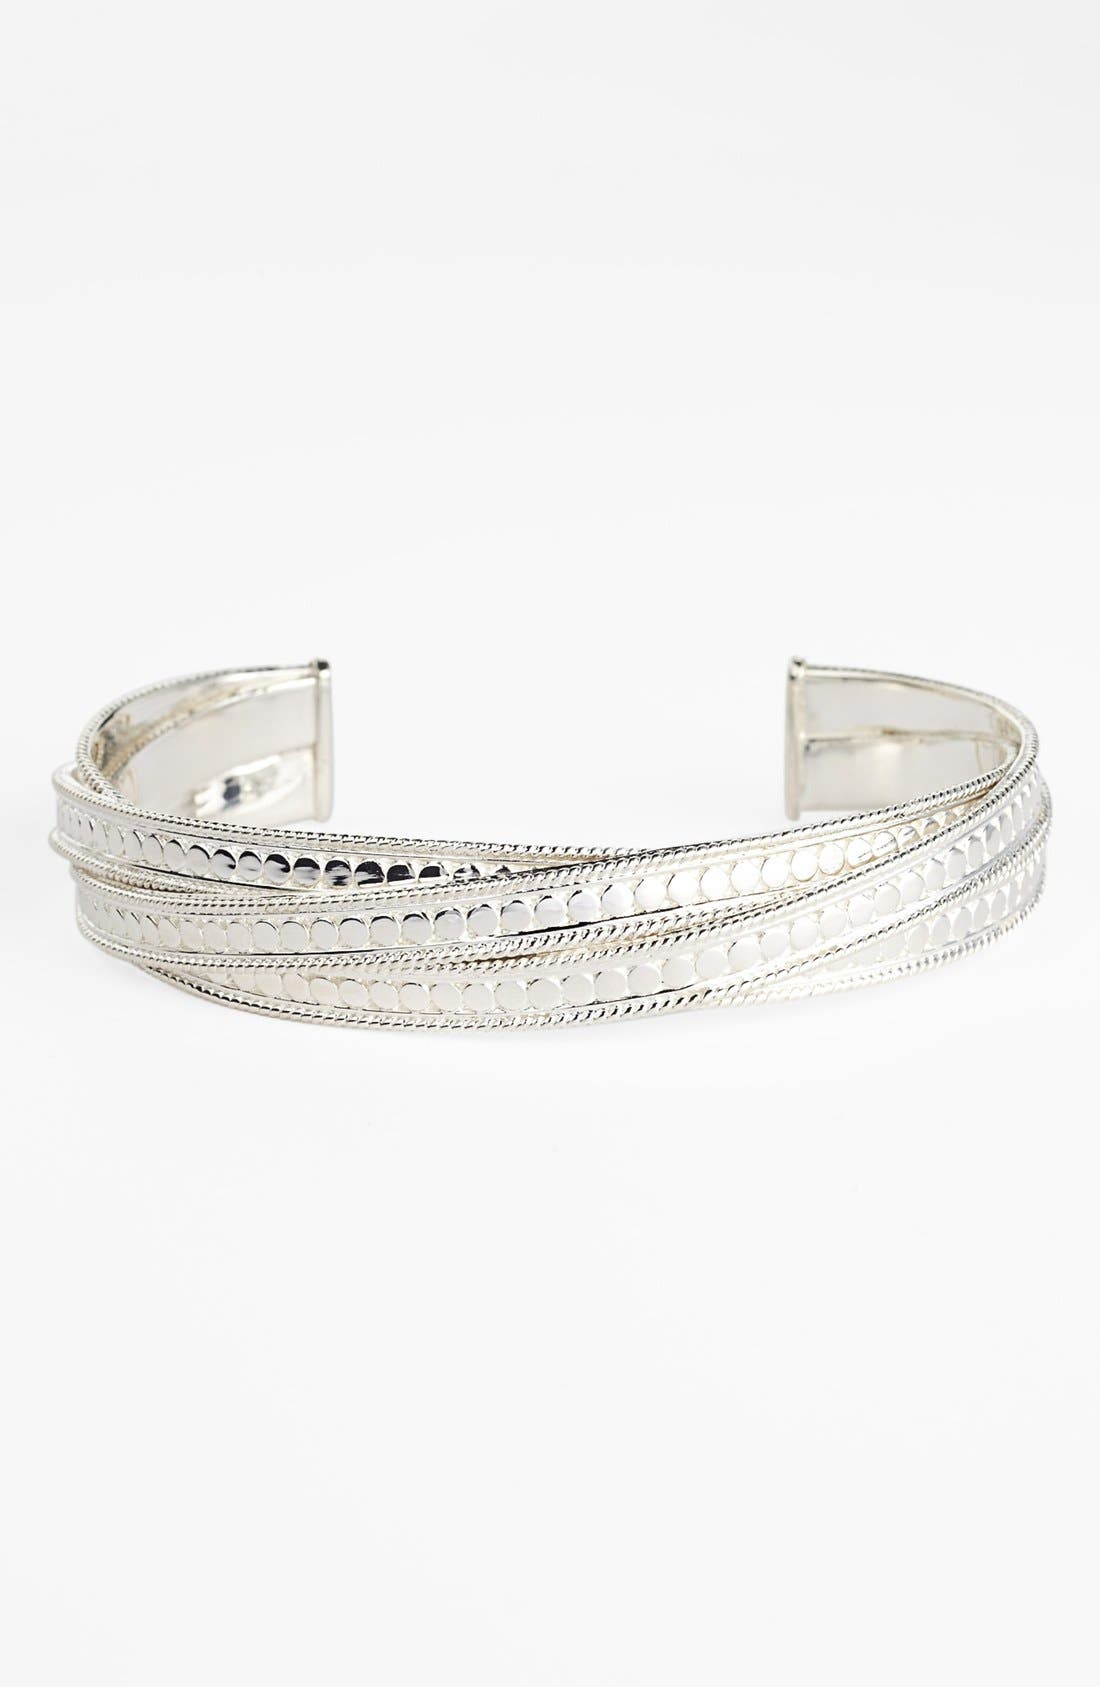 Alternate Image 1 Selected - Anna Beck 'Timor' Wire Twist Cuff